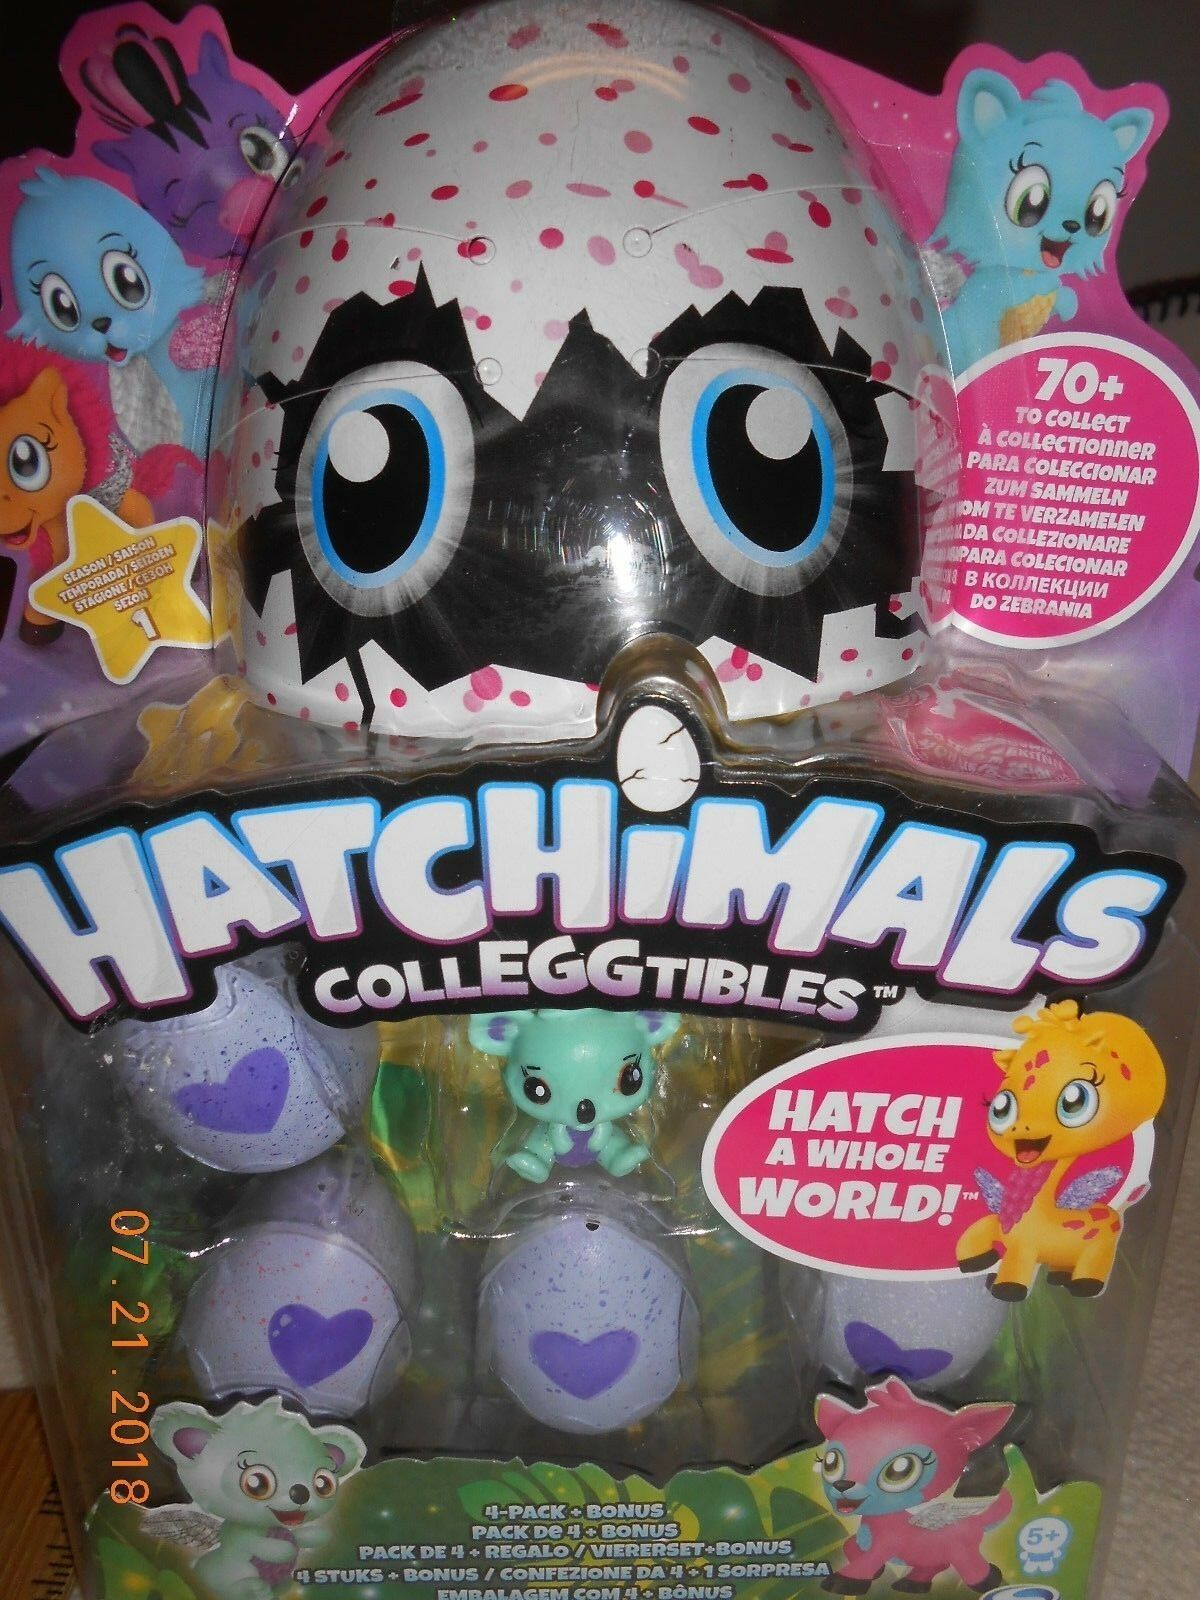 NEW Hatchimals Colleggtibles Mini 4 Pack Bonus Hatchimal Season 1 Easter Gift